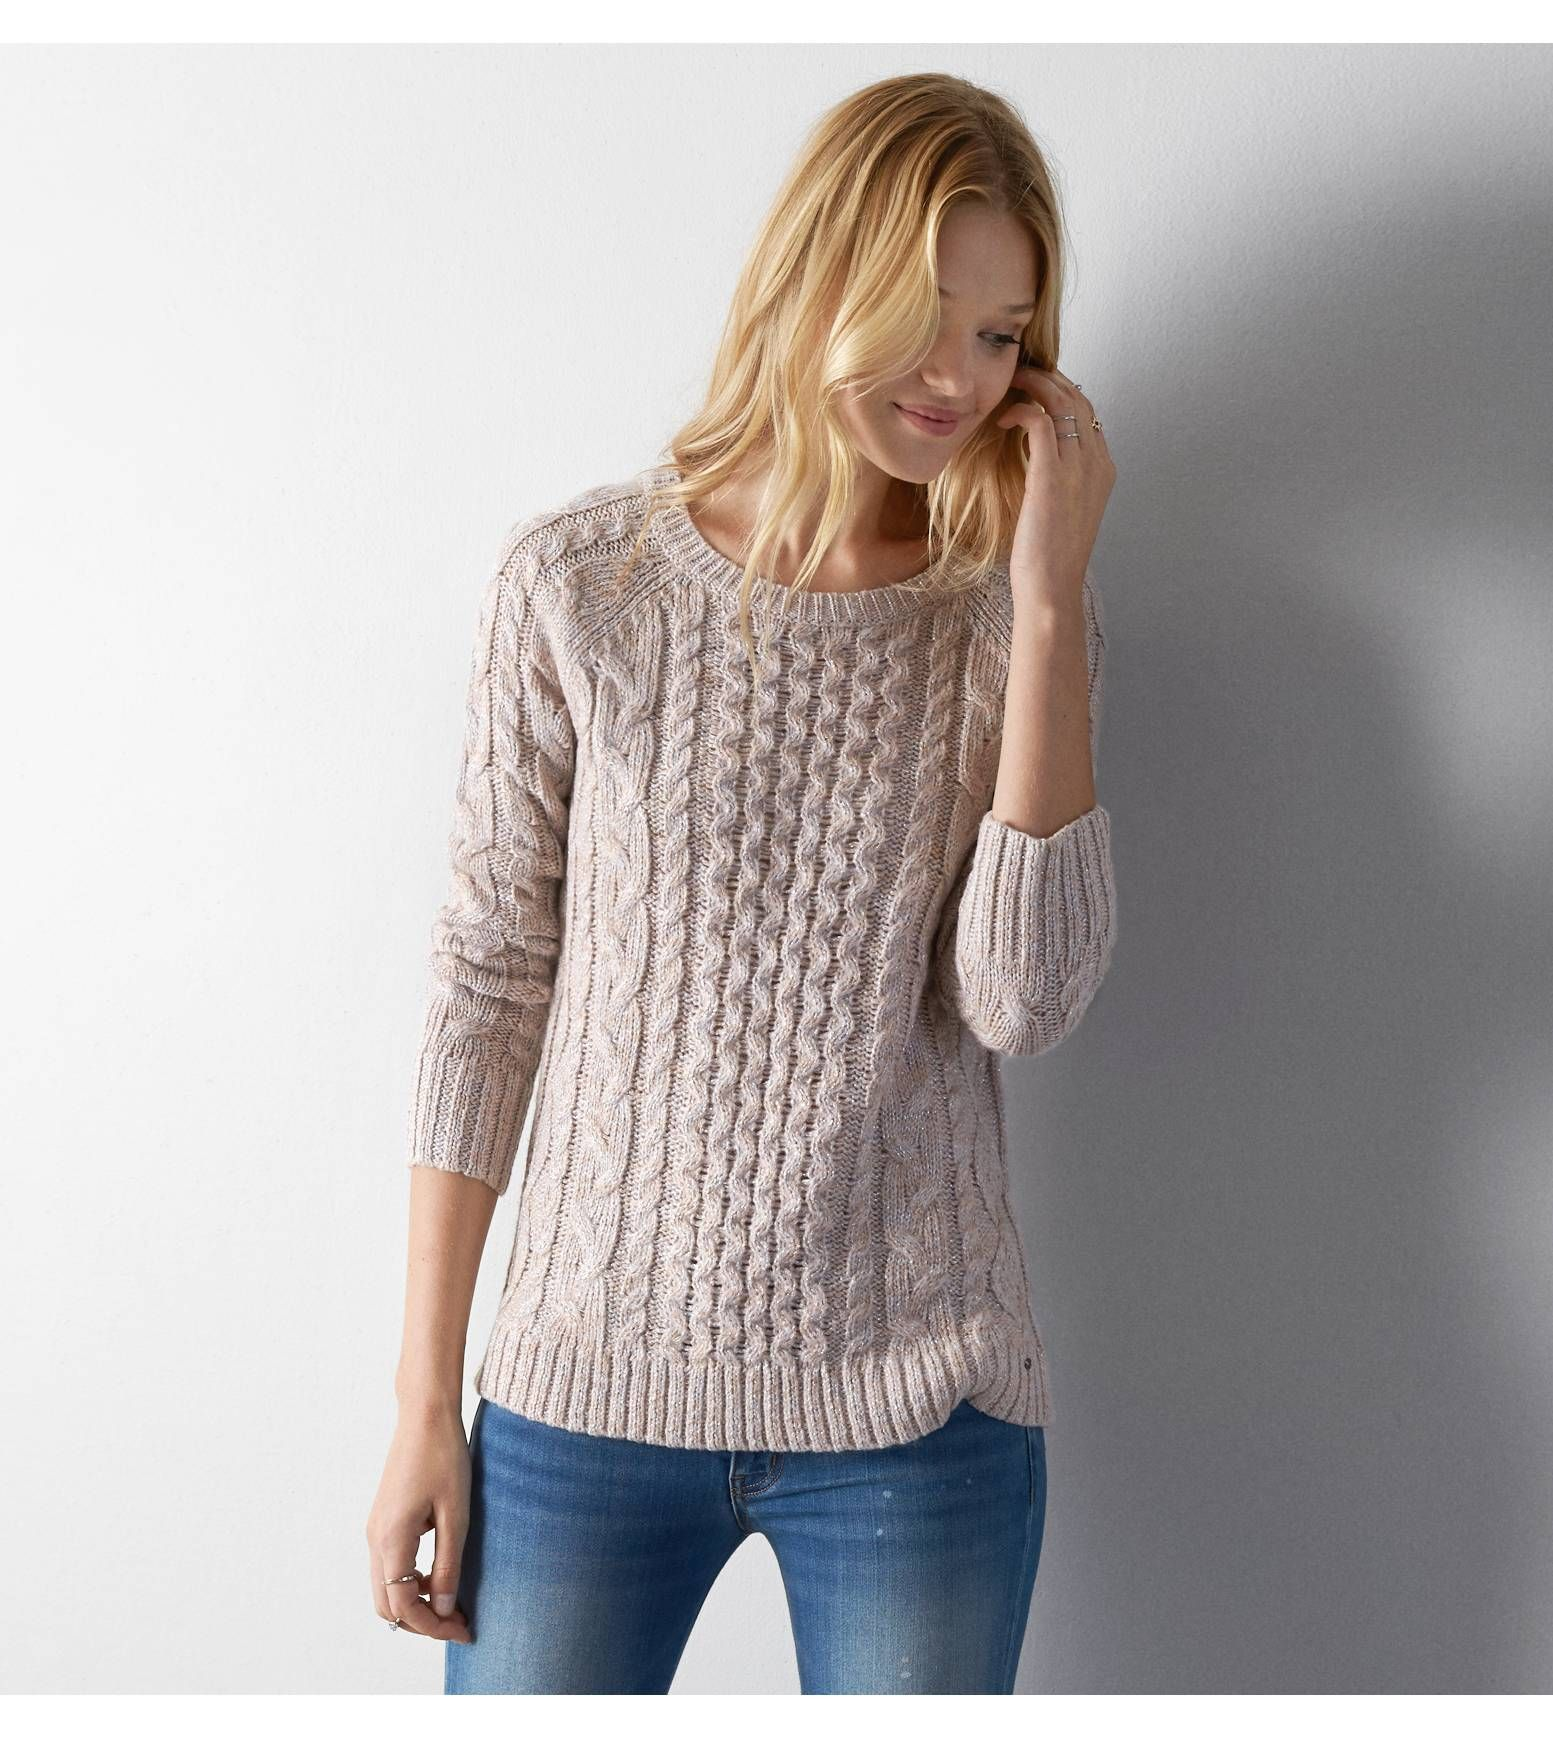 Pale Pink AEO Cable Knit Sweater | Fantasy Wardrobe | Pinterest ...